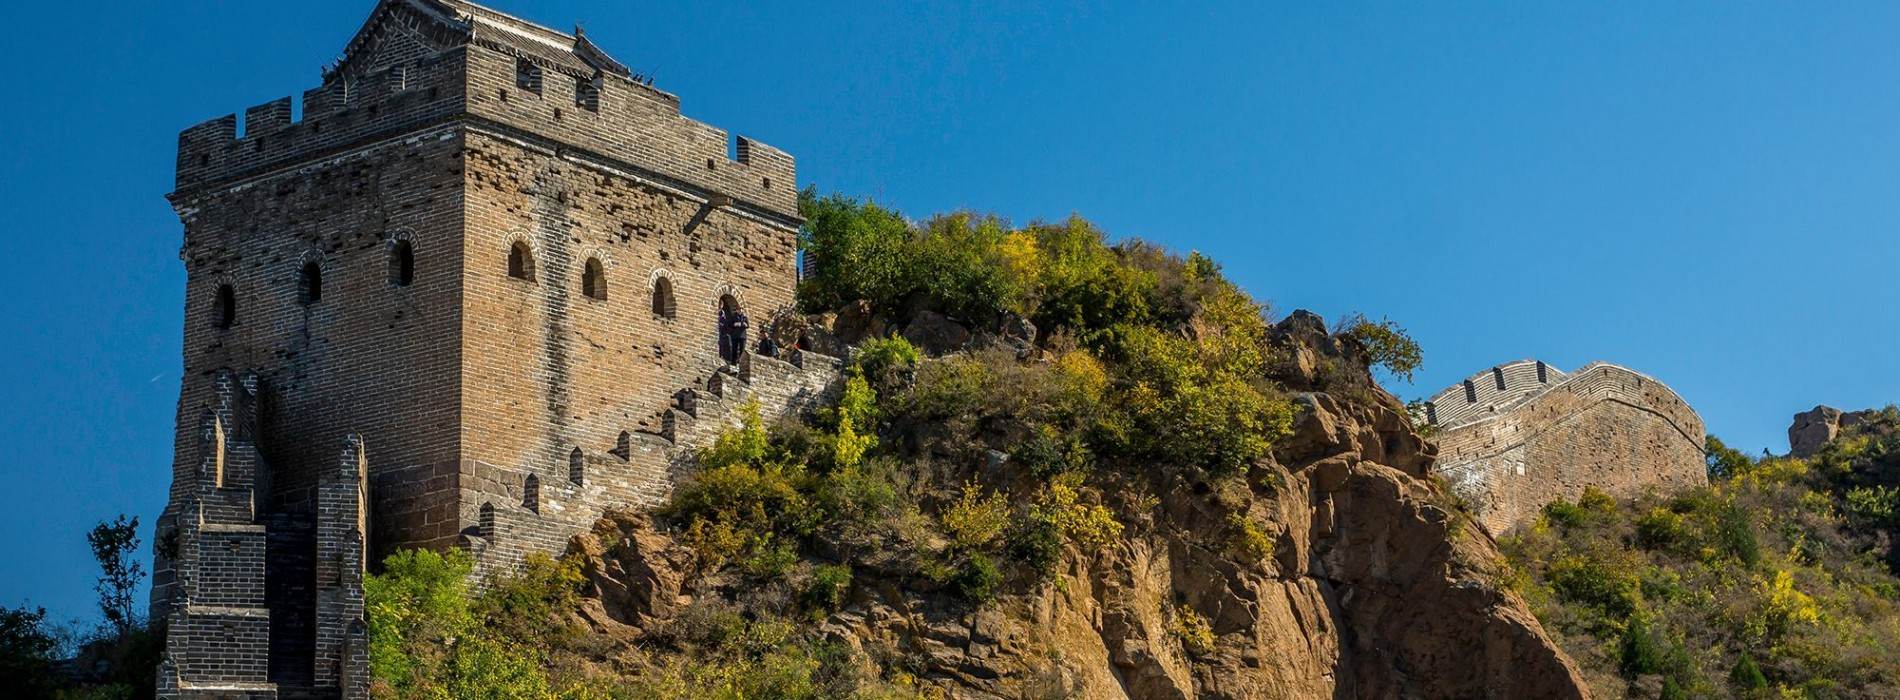 Lookout towers on the Great Wall of China